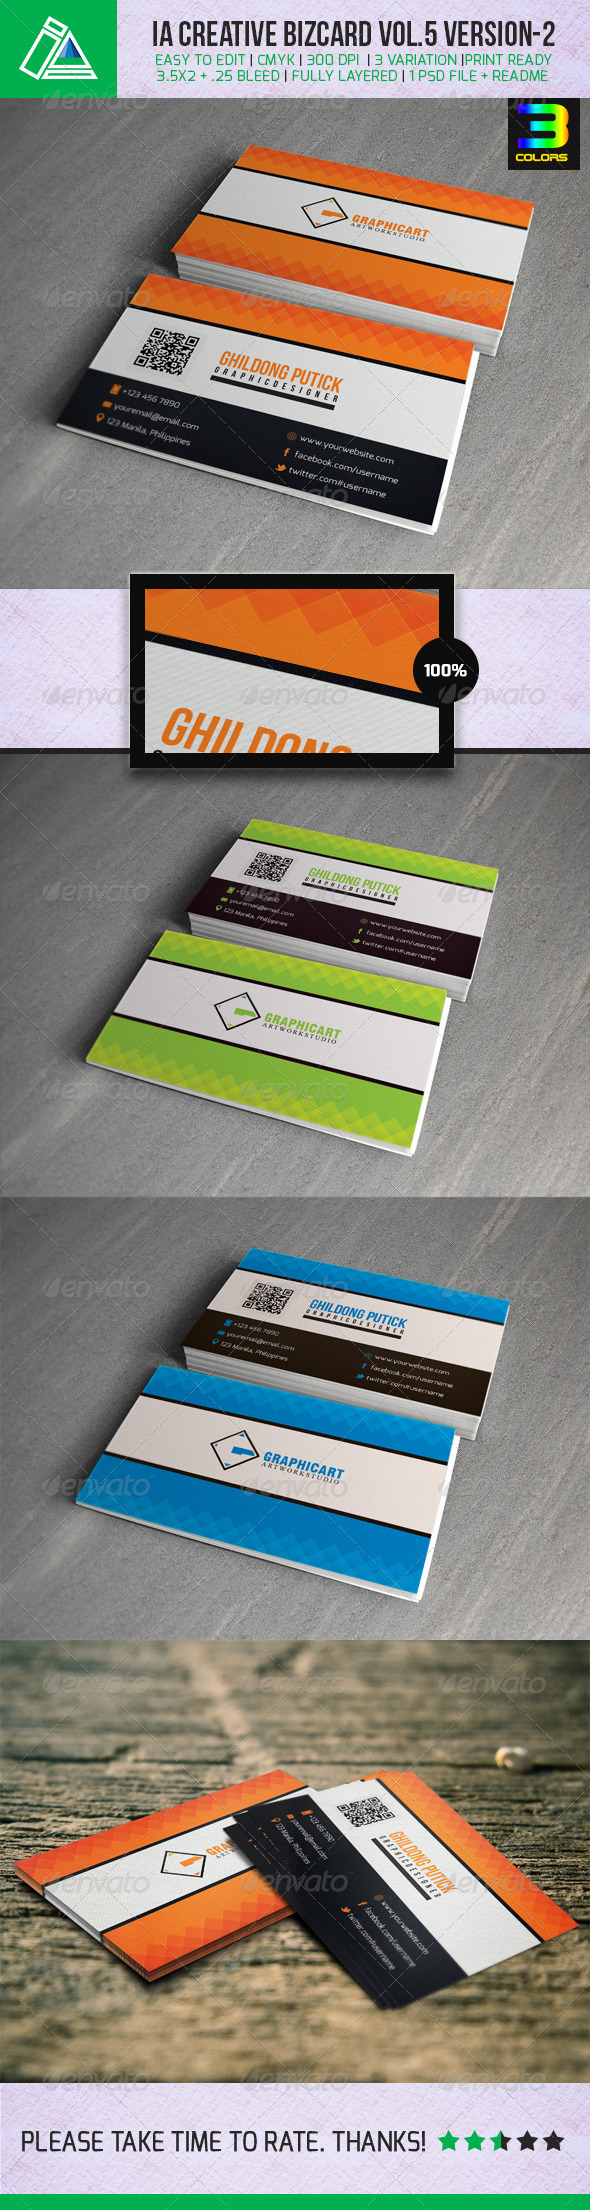 GraphicRiver IA Business Card Vol.5 Version 2 4986717